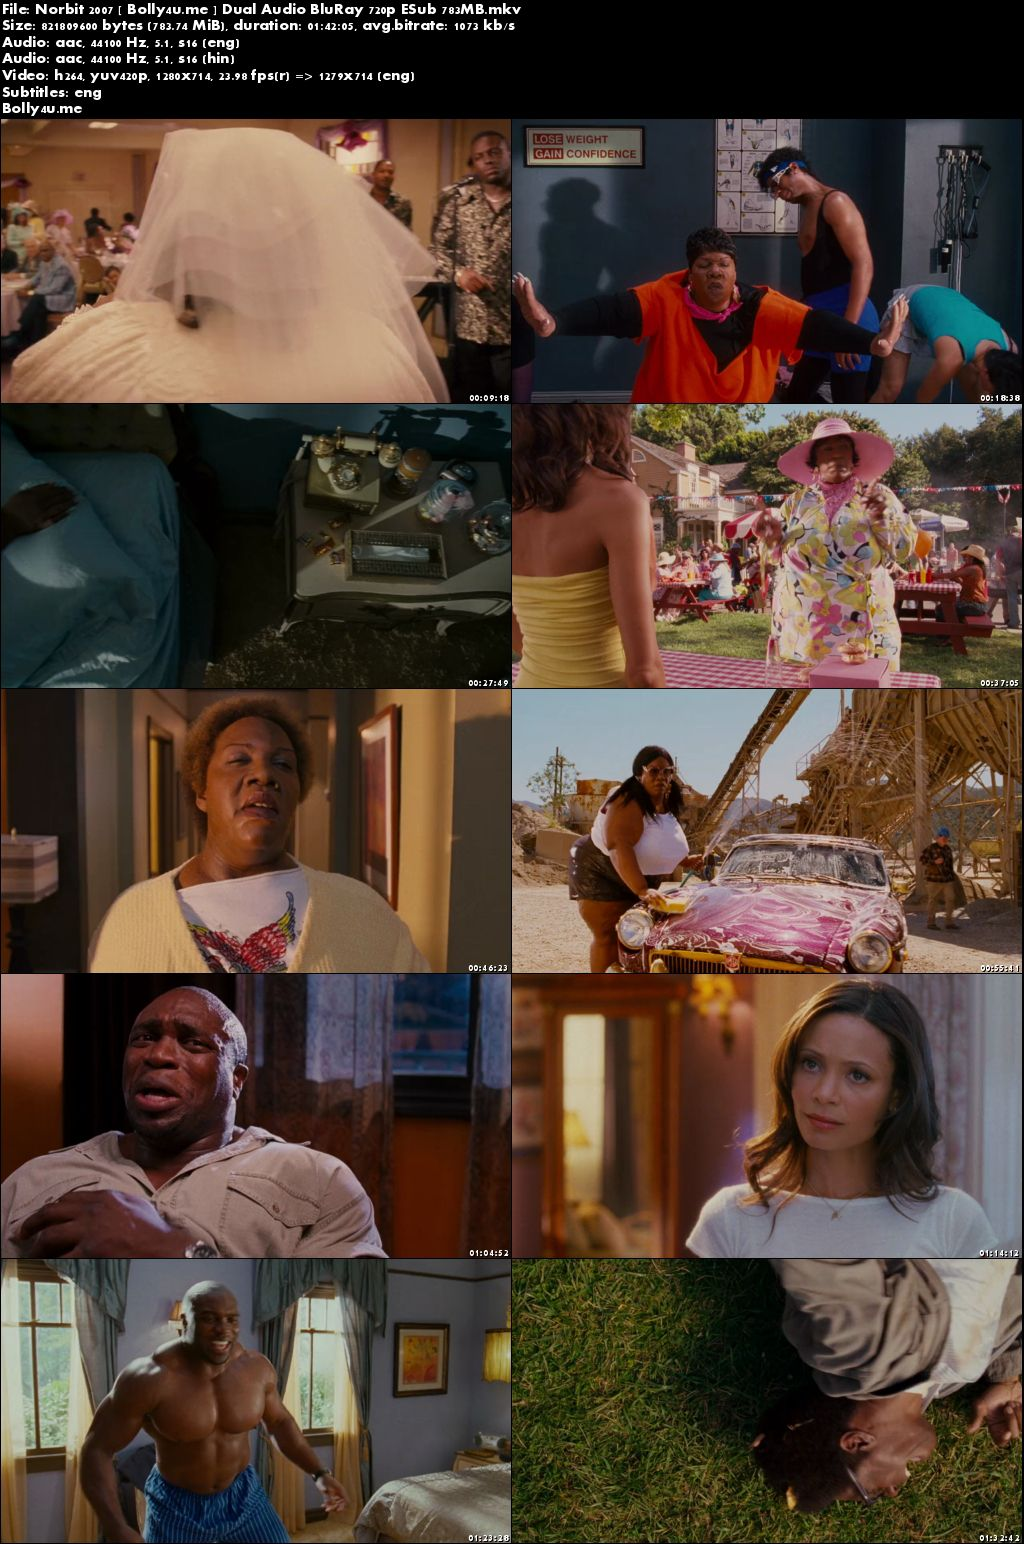 Norbit 2007 BluRay 750MB Hindi Dubbed Dual Audio 720p ESub Download